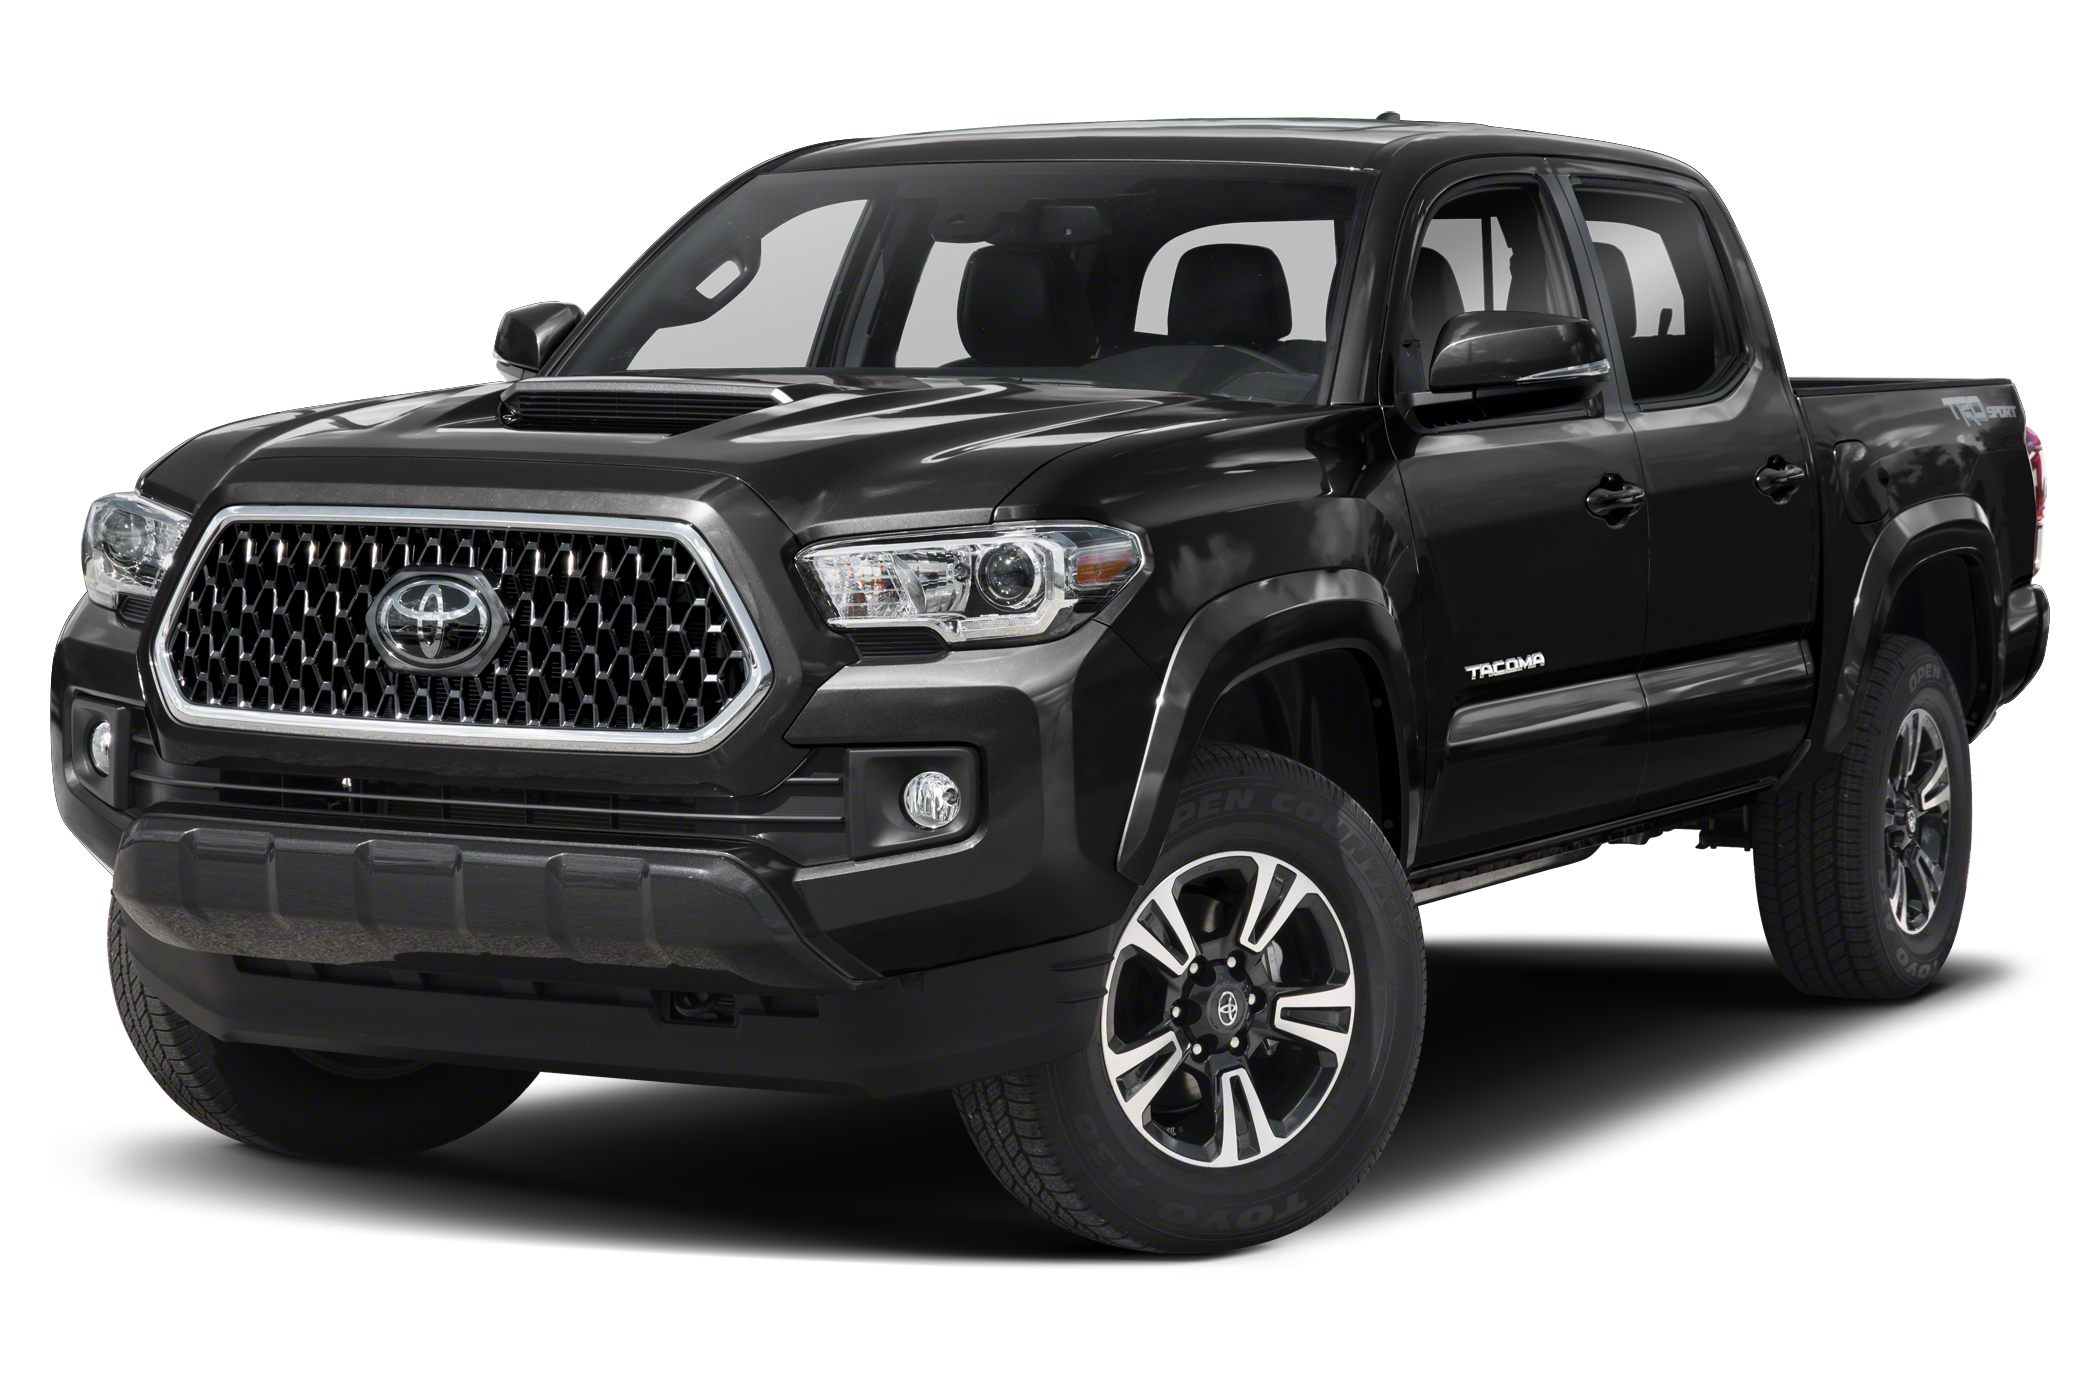 2019 Toyota Tacoma TRD Sport V6 4x2 Double Cab 127.4 in. WB